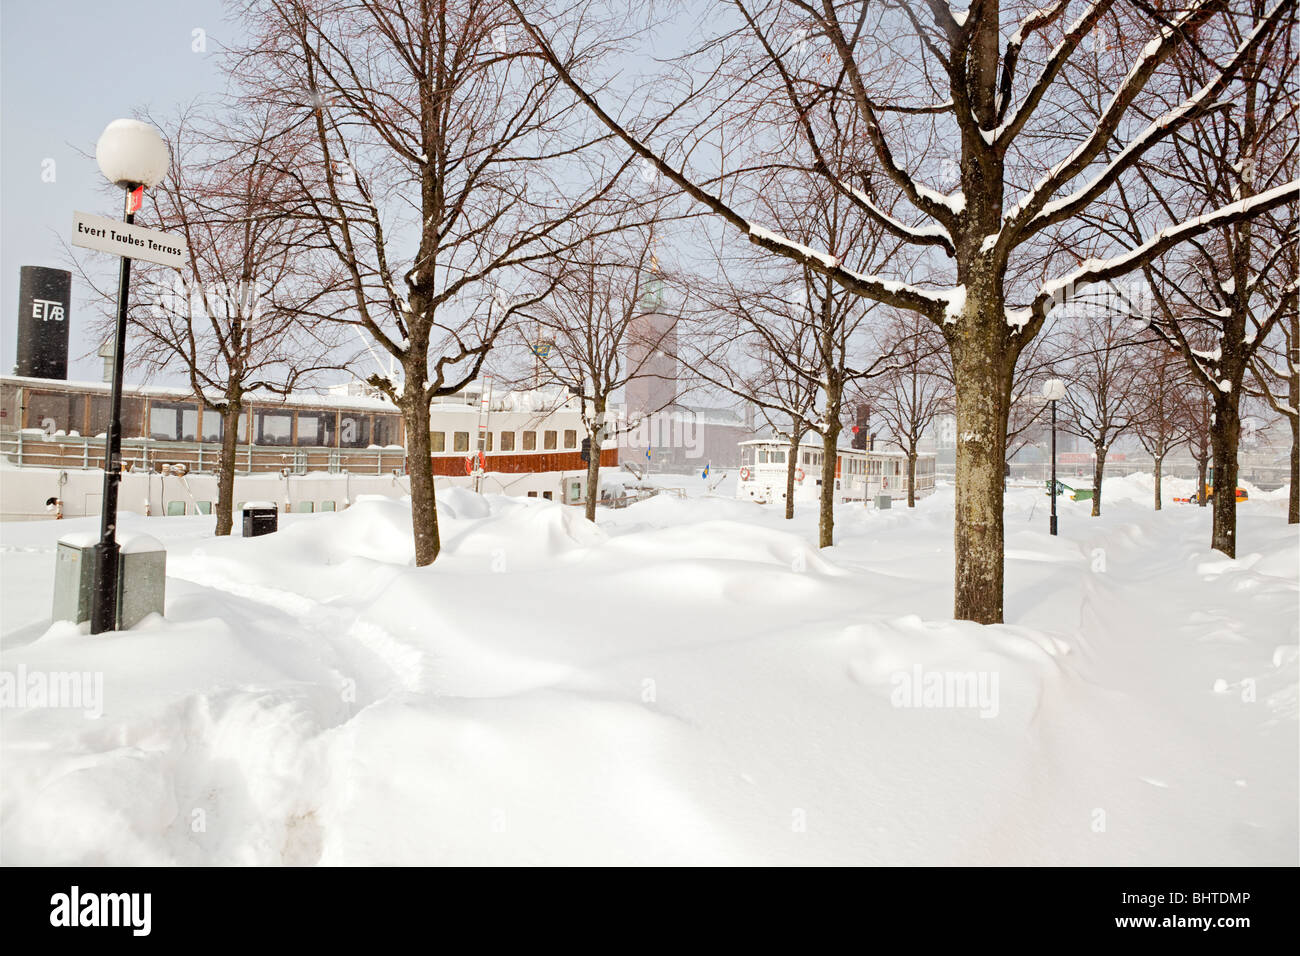 Winter at Riddarholmen in Stockholm after a heavy snowfall - Stock Image